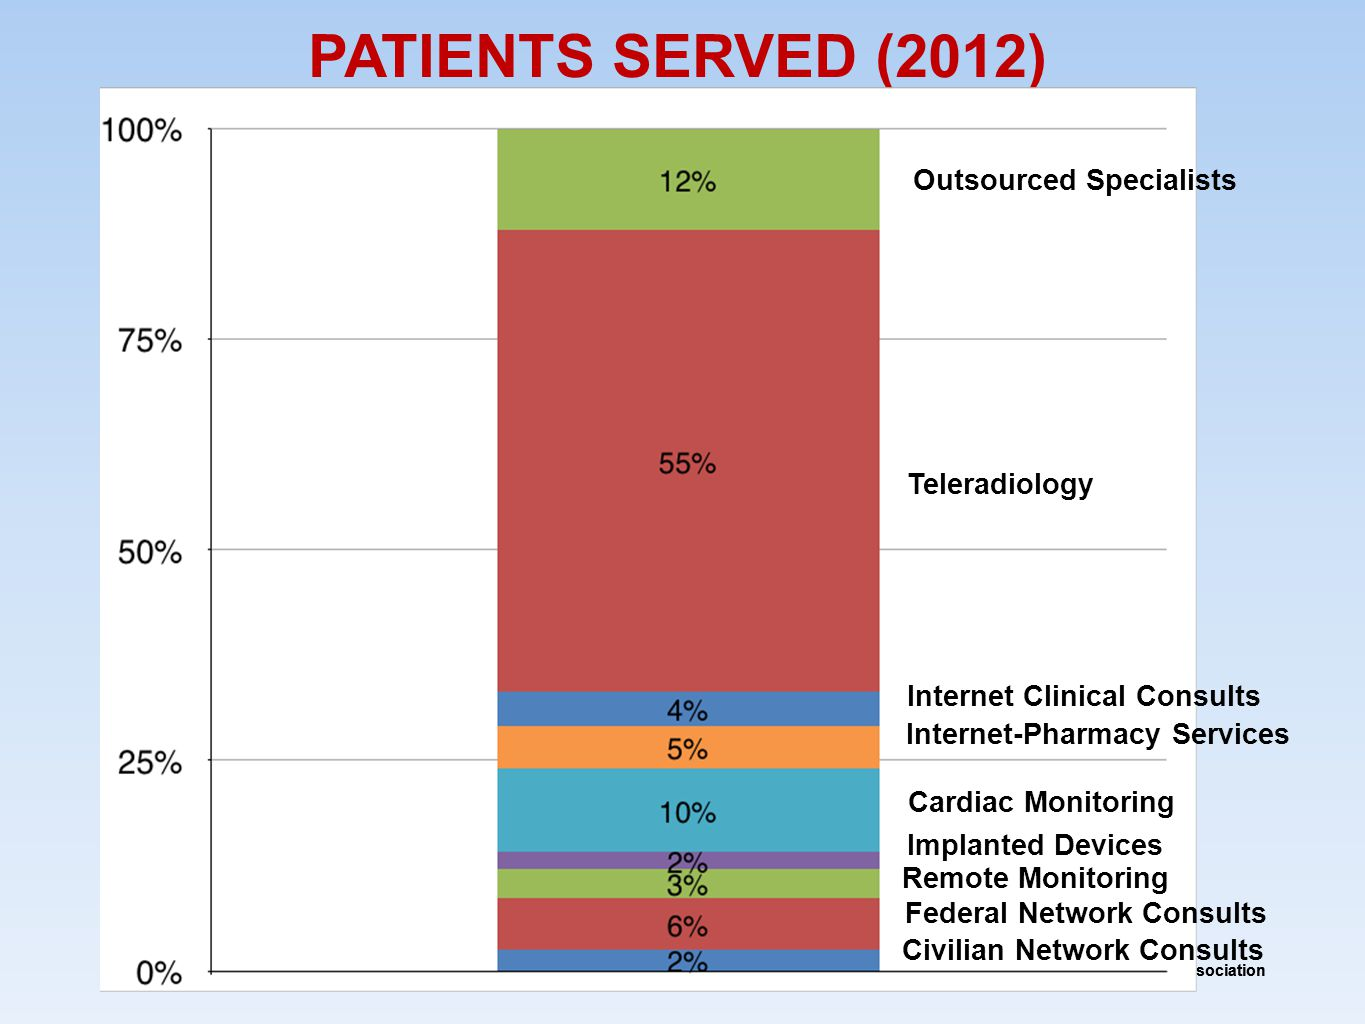 © American Telemedicine Association PATIENTS SERVED (2012) Civilian Network Consults Federal Network Consults Remote Monitoring Implanted Devices Cardiac Monitoring Internet-Pharmacy Services Internet Clinical Consults Teleradiology Outsourced Specialists